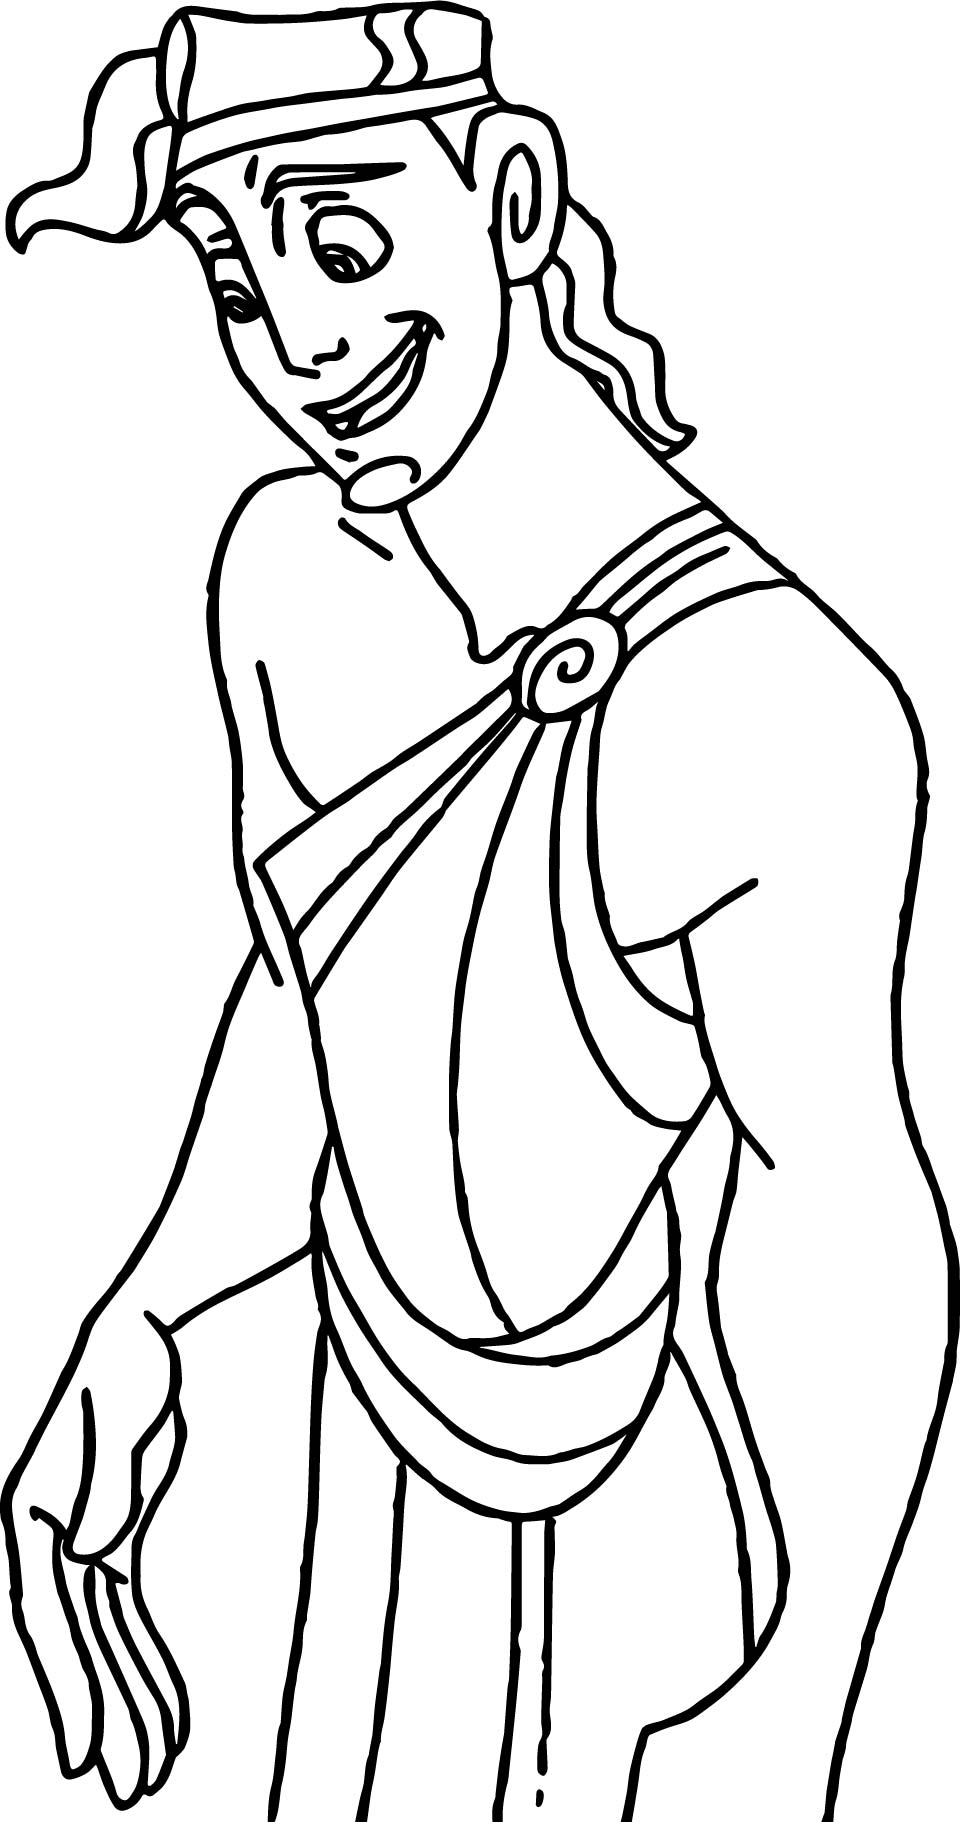 Hercules Pan Coloring Pages Wecoloringpage